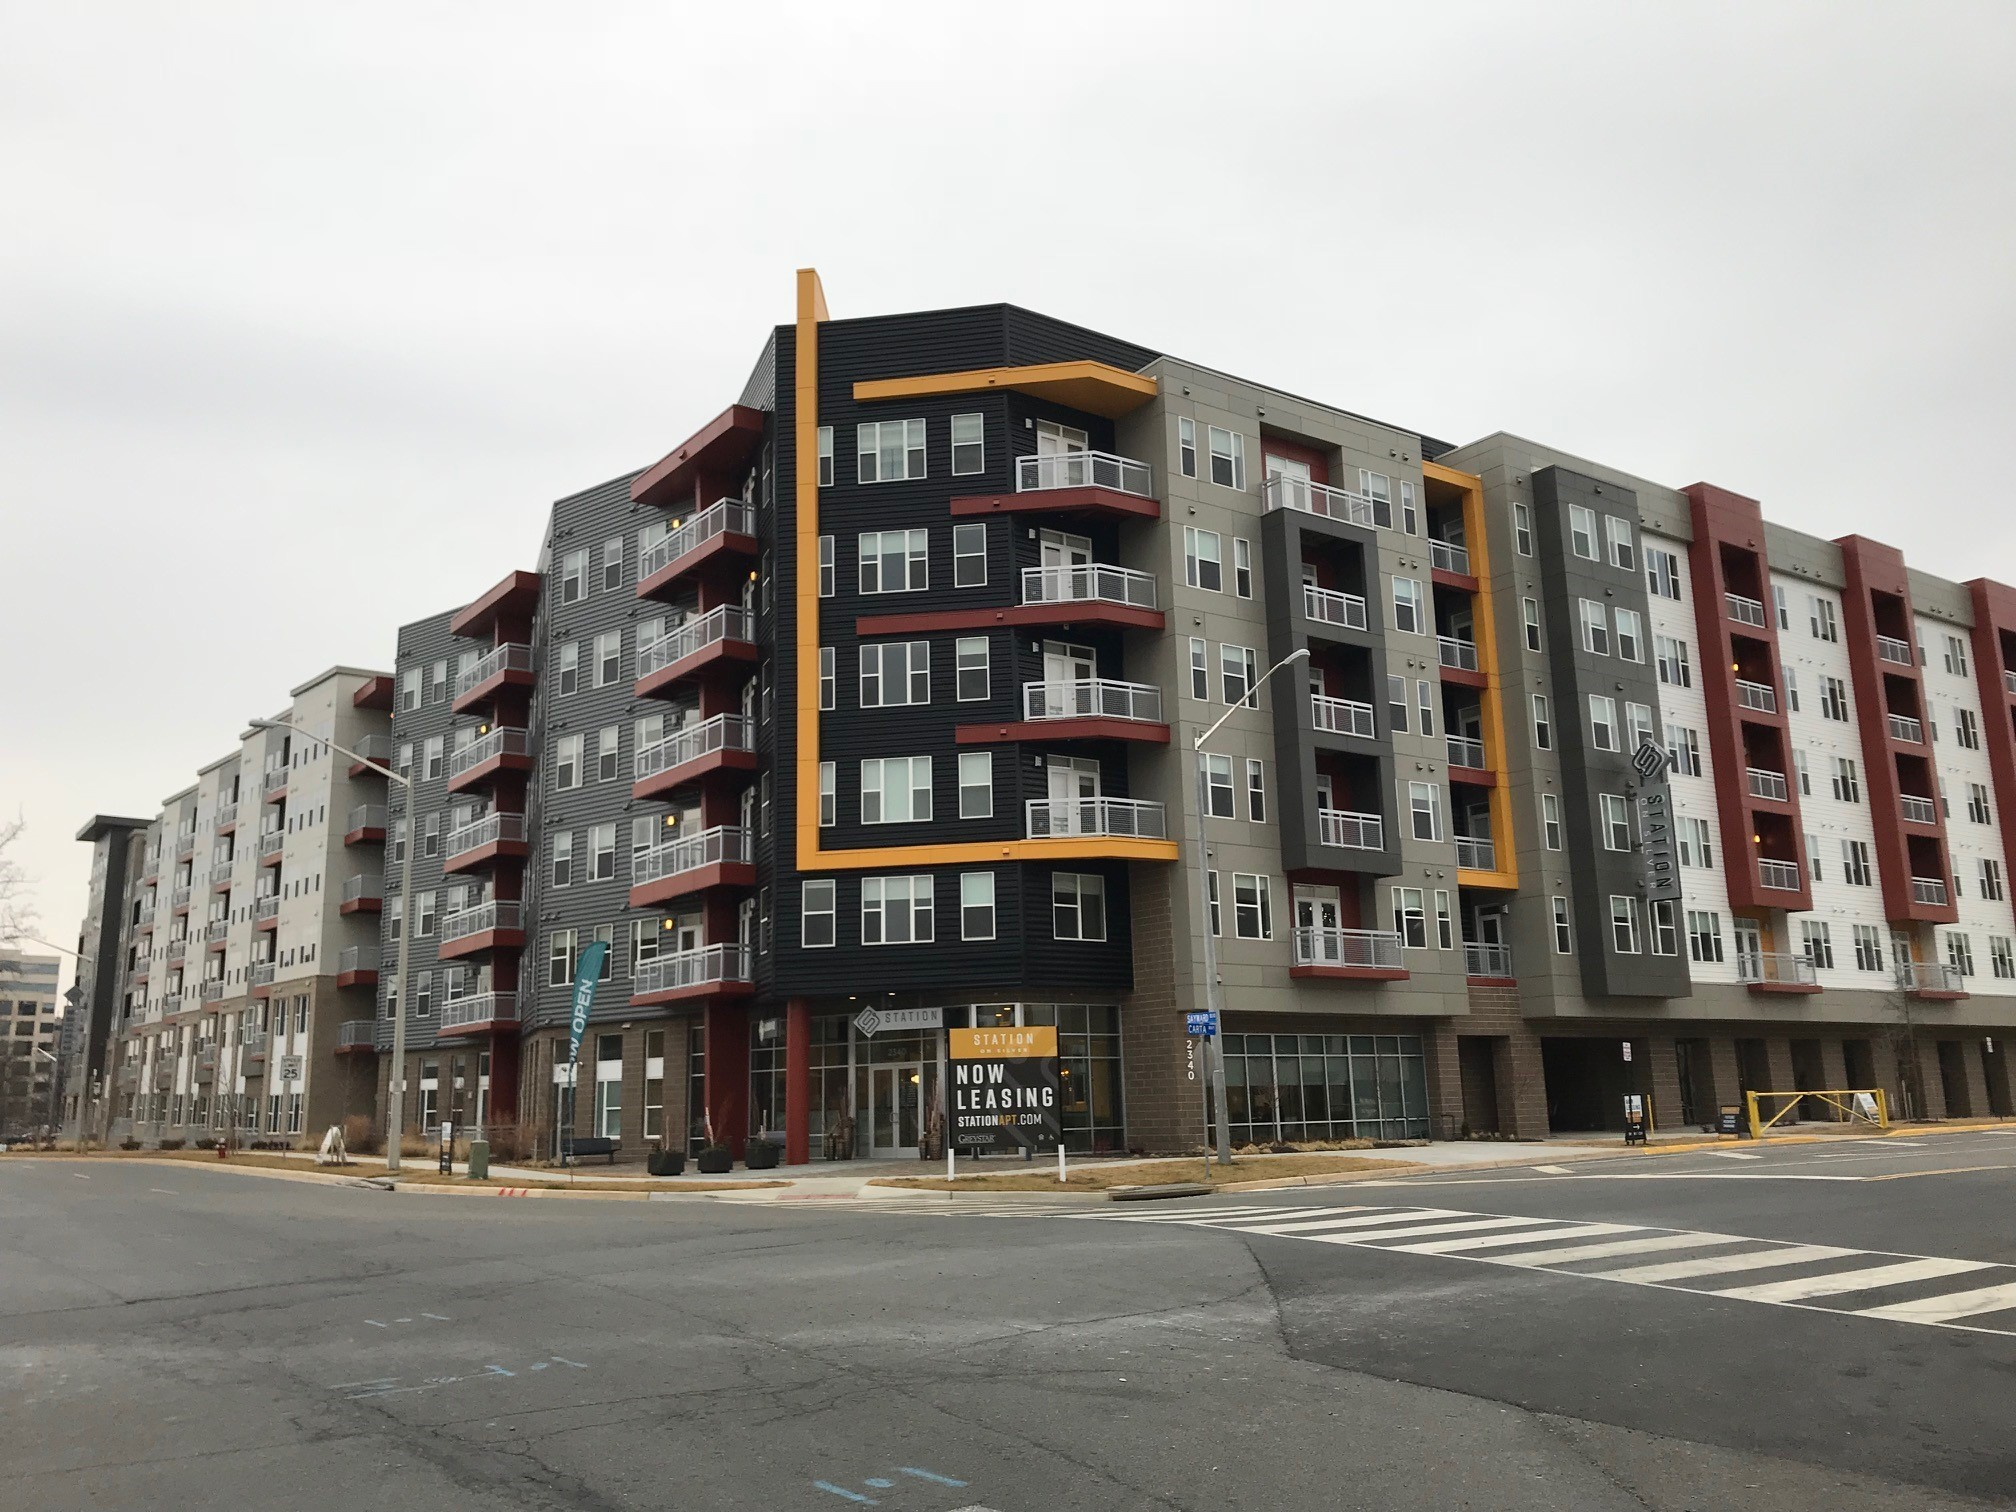 Dulles Station Parcel apartment complex in Virginia as seen from the street with a 'now leasing' sign.